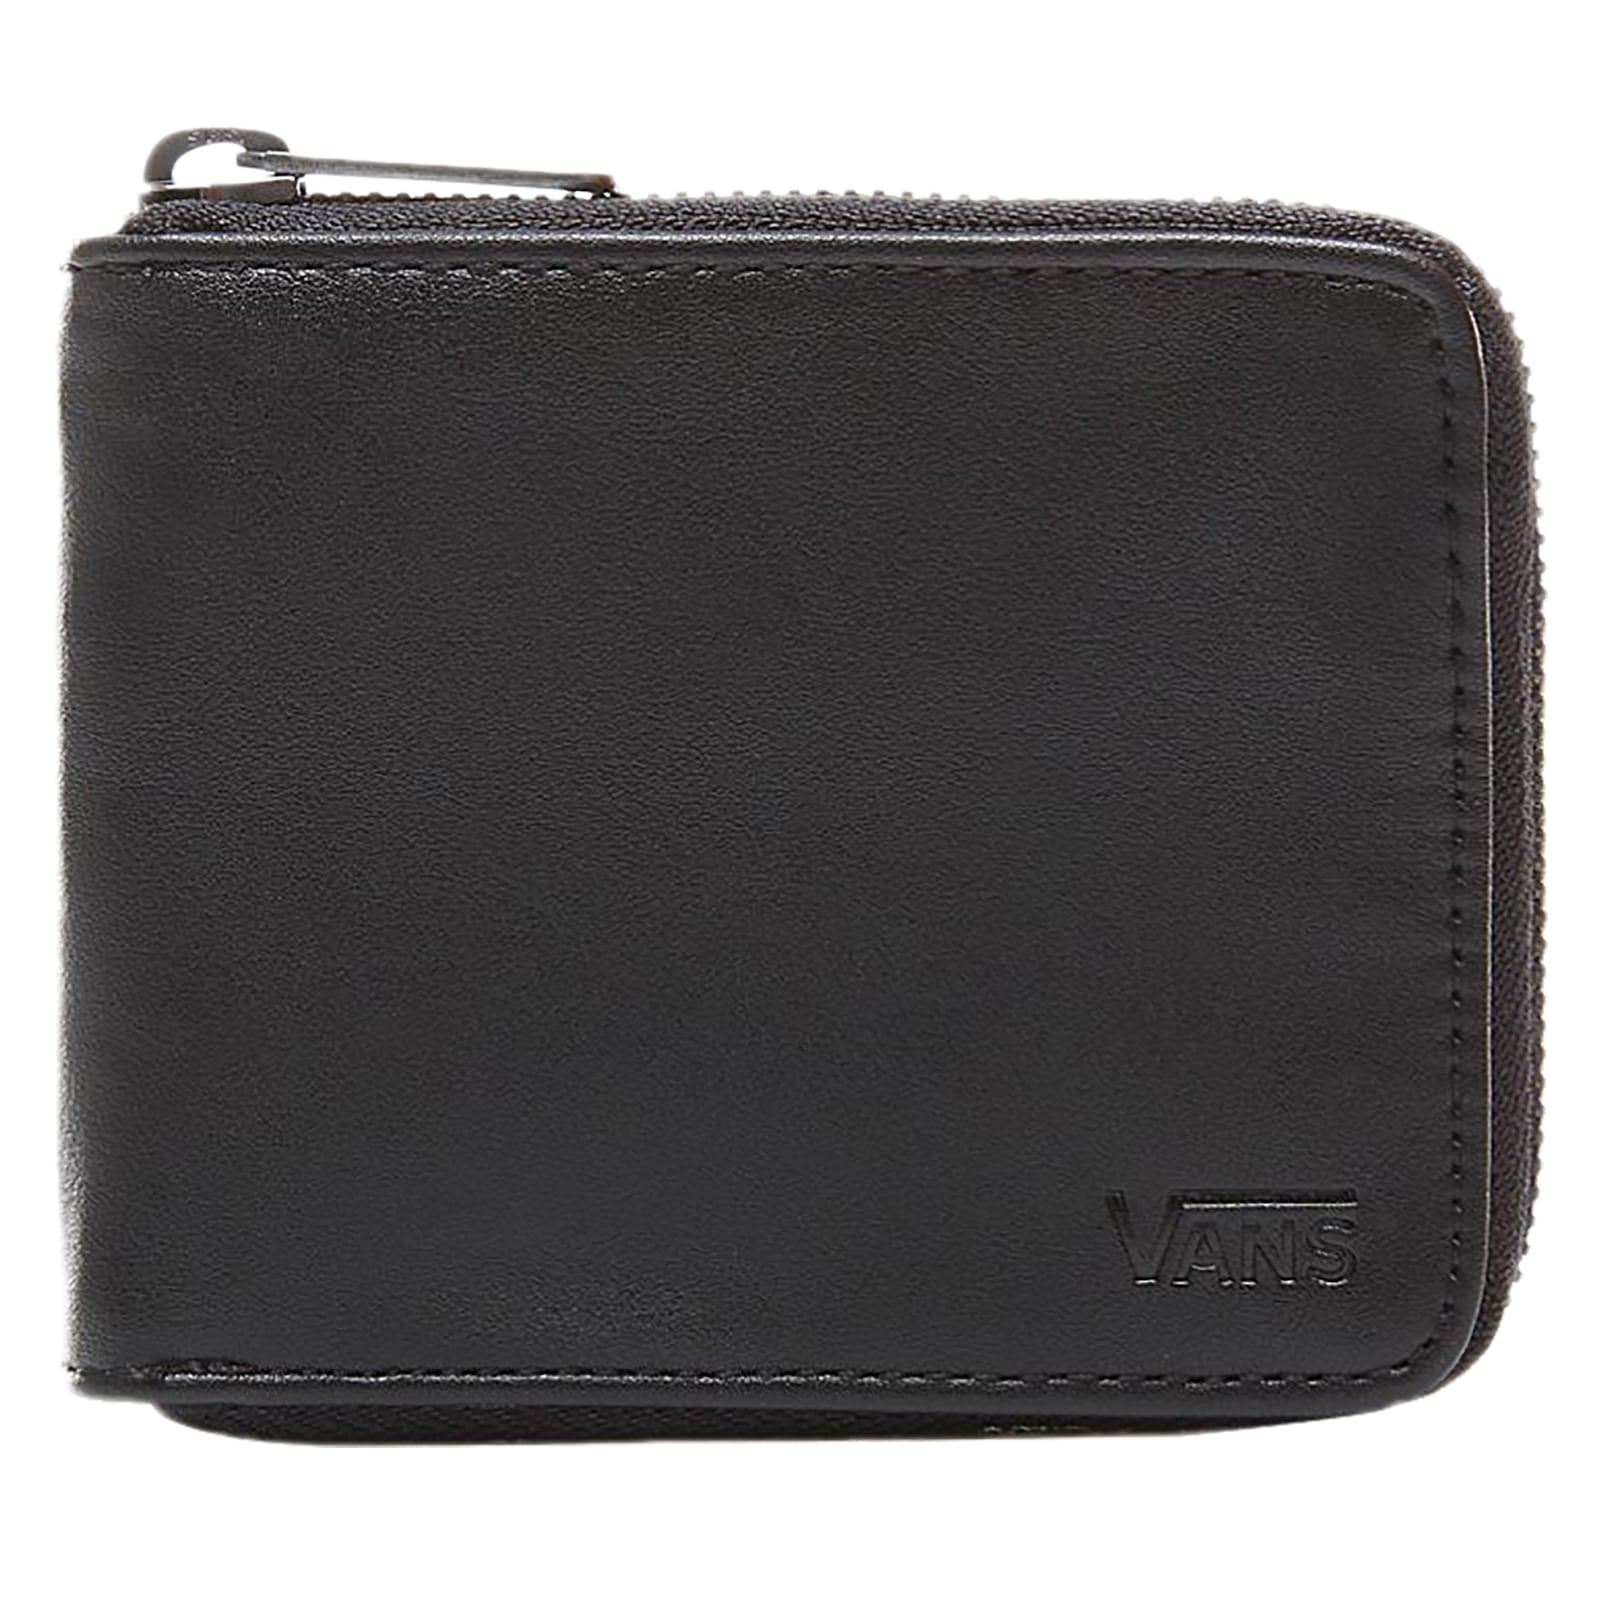 VANS peňaženka DROP V ZIP WALLET - BLACK